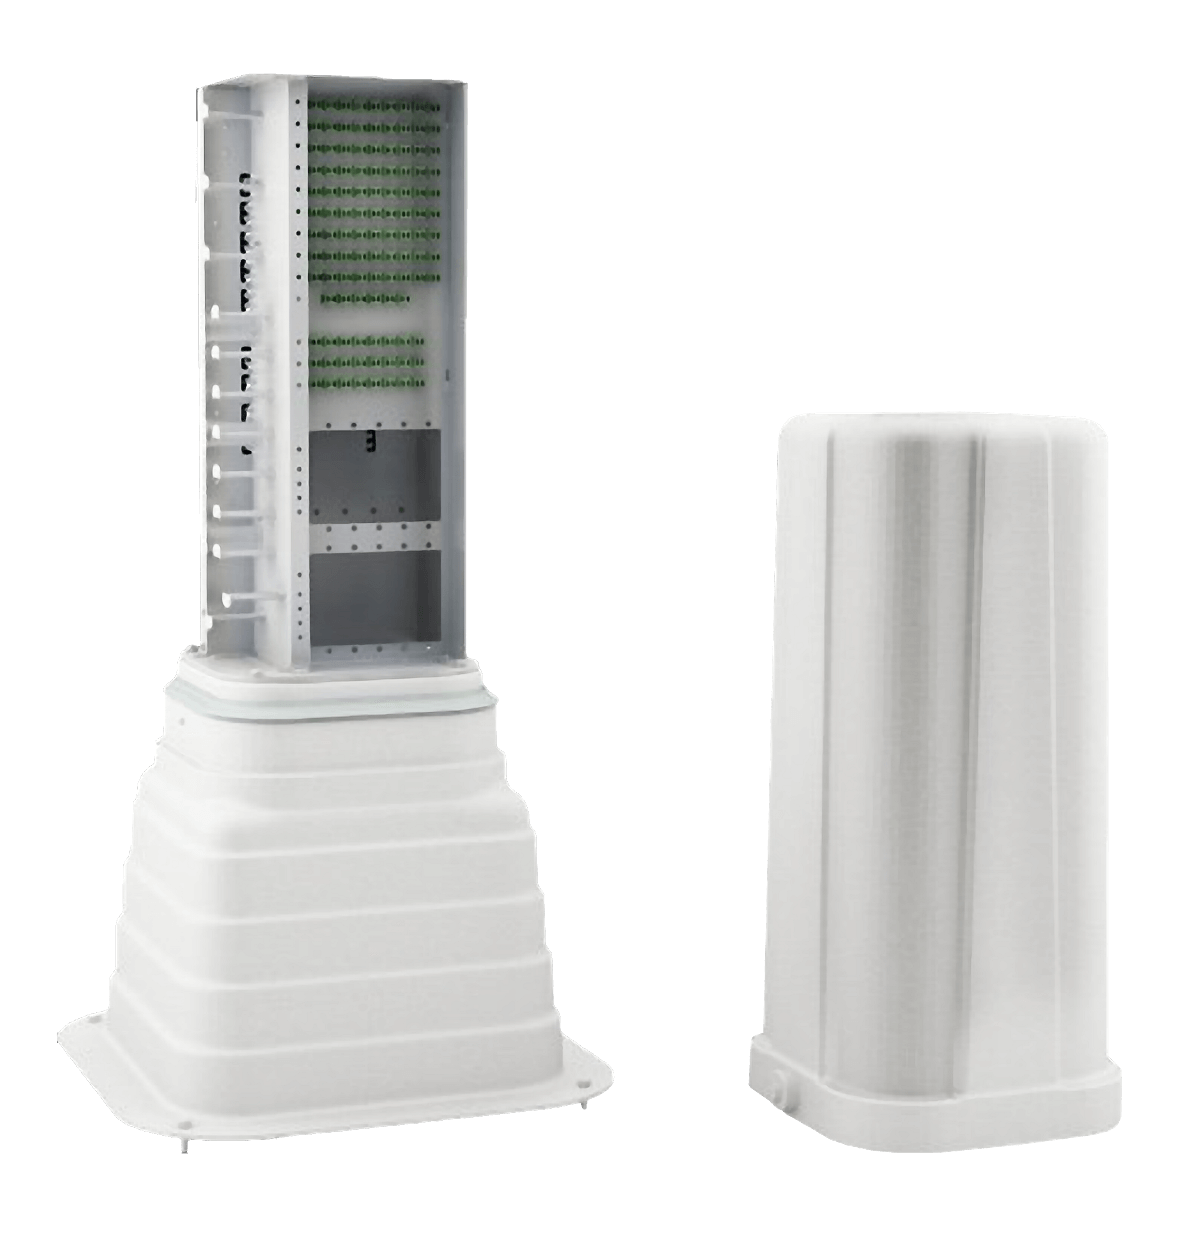 حجرة توزيع ألياف بصرية Pedestal 192F  - Furukawa Distribution Network Broadband Systems